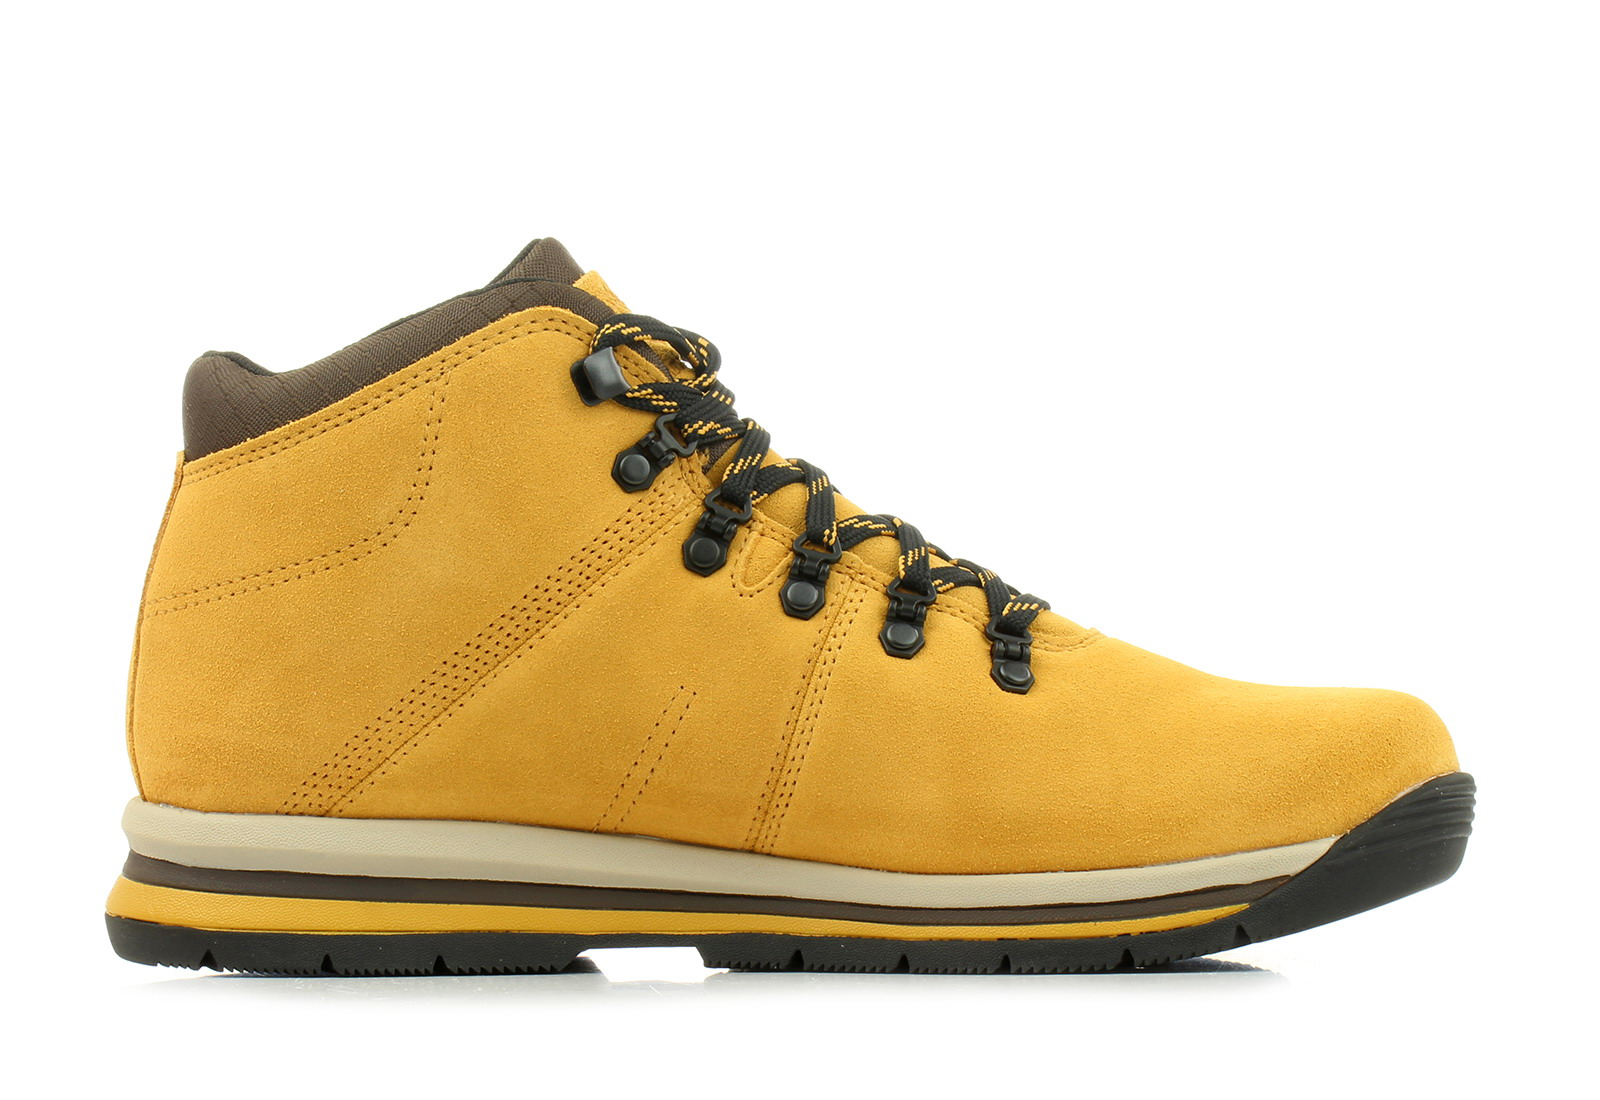 a0c1be54d65b5 Timberland Buty Zimowe - Gt Rally Mid Leather Wp - A1RJ7-whe ...